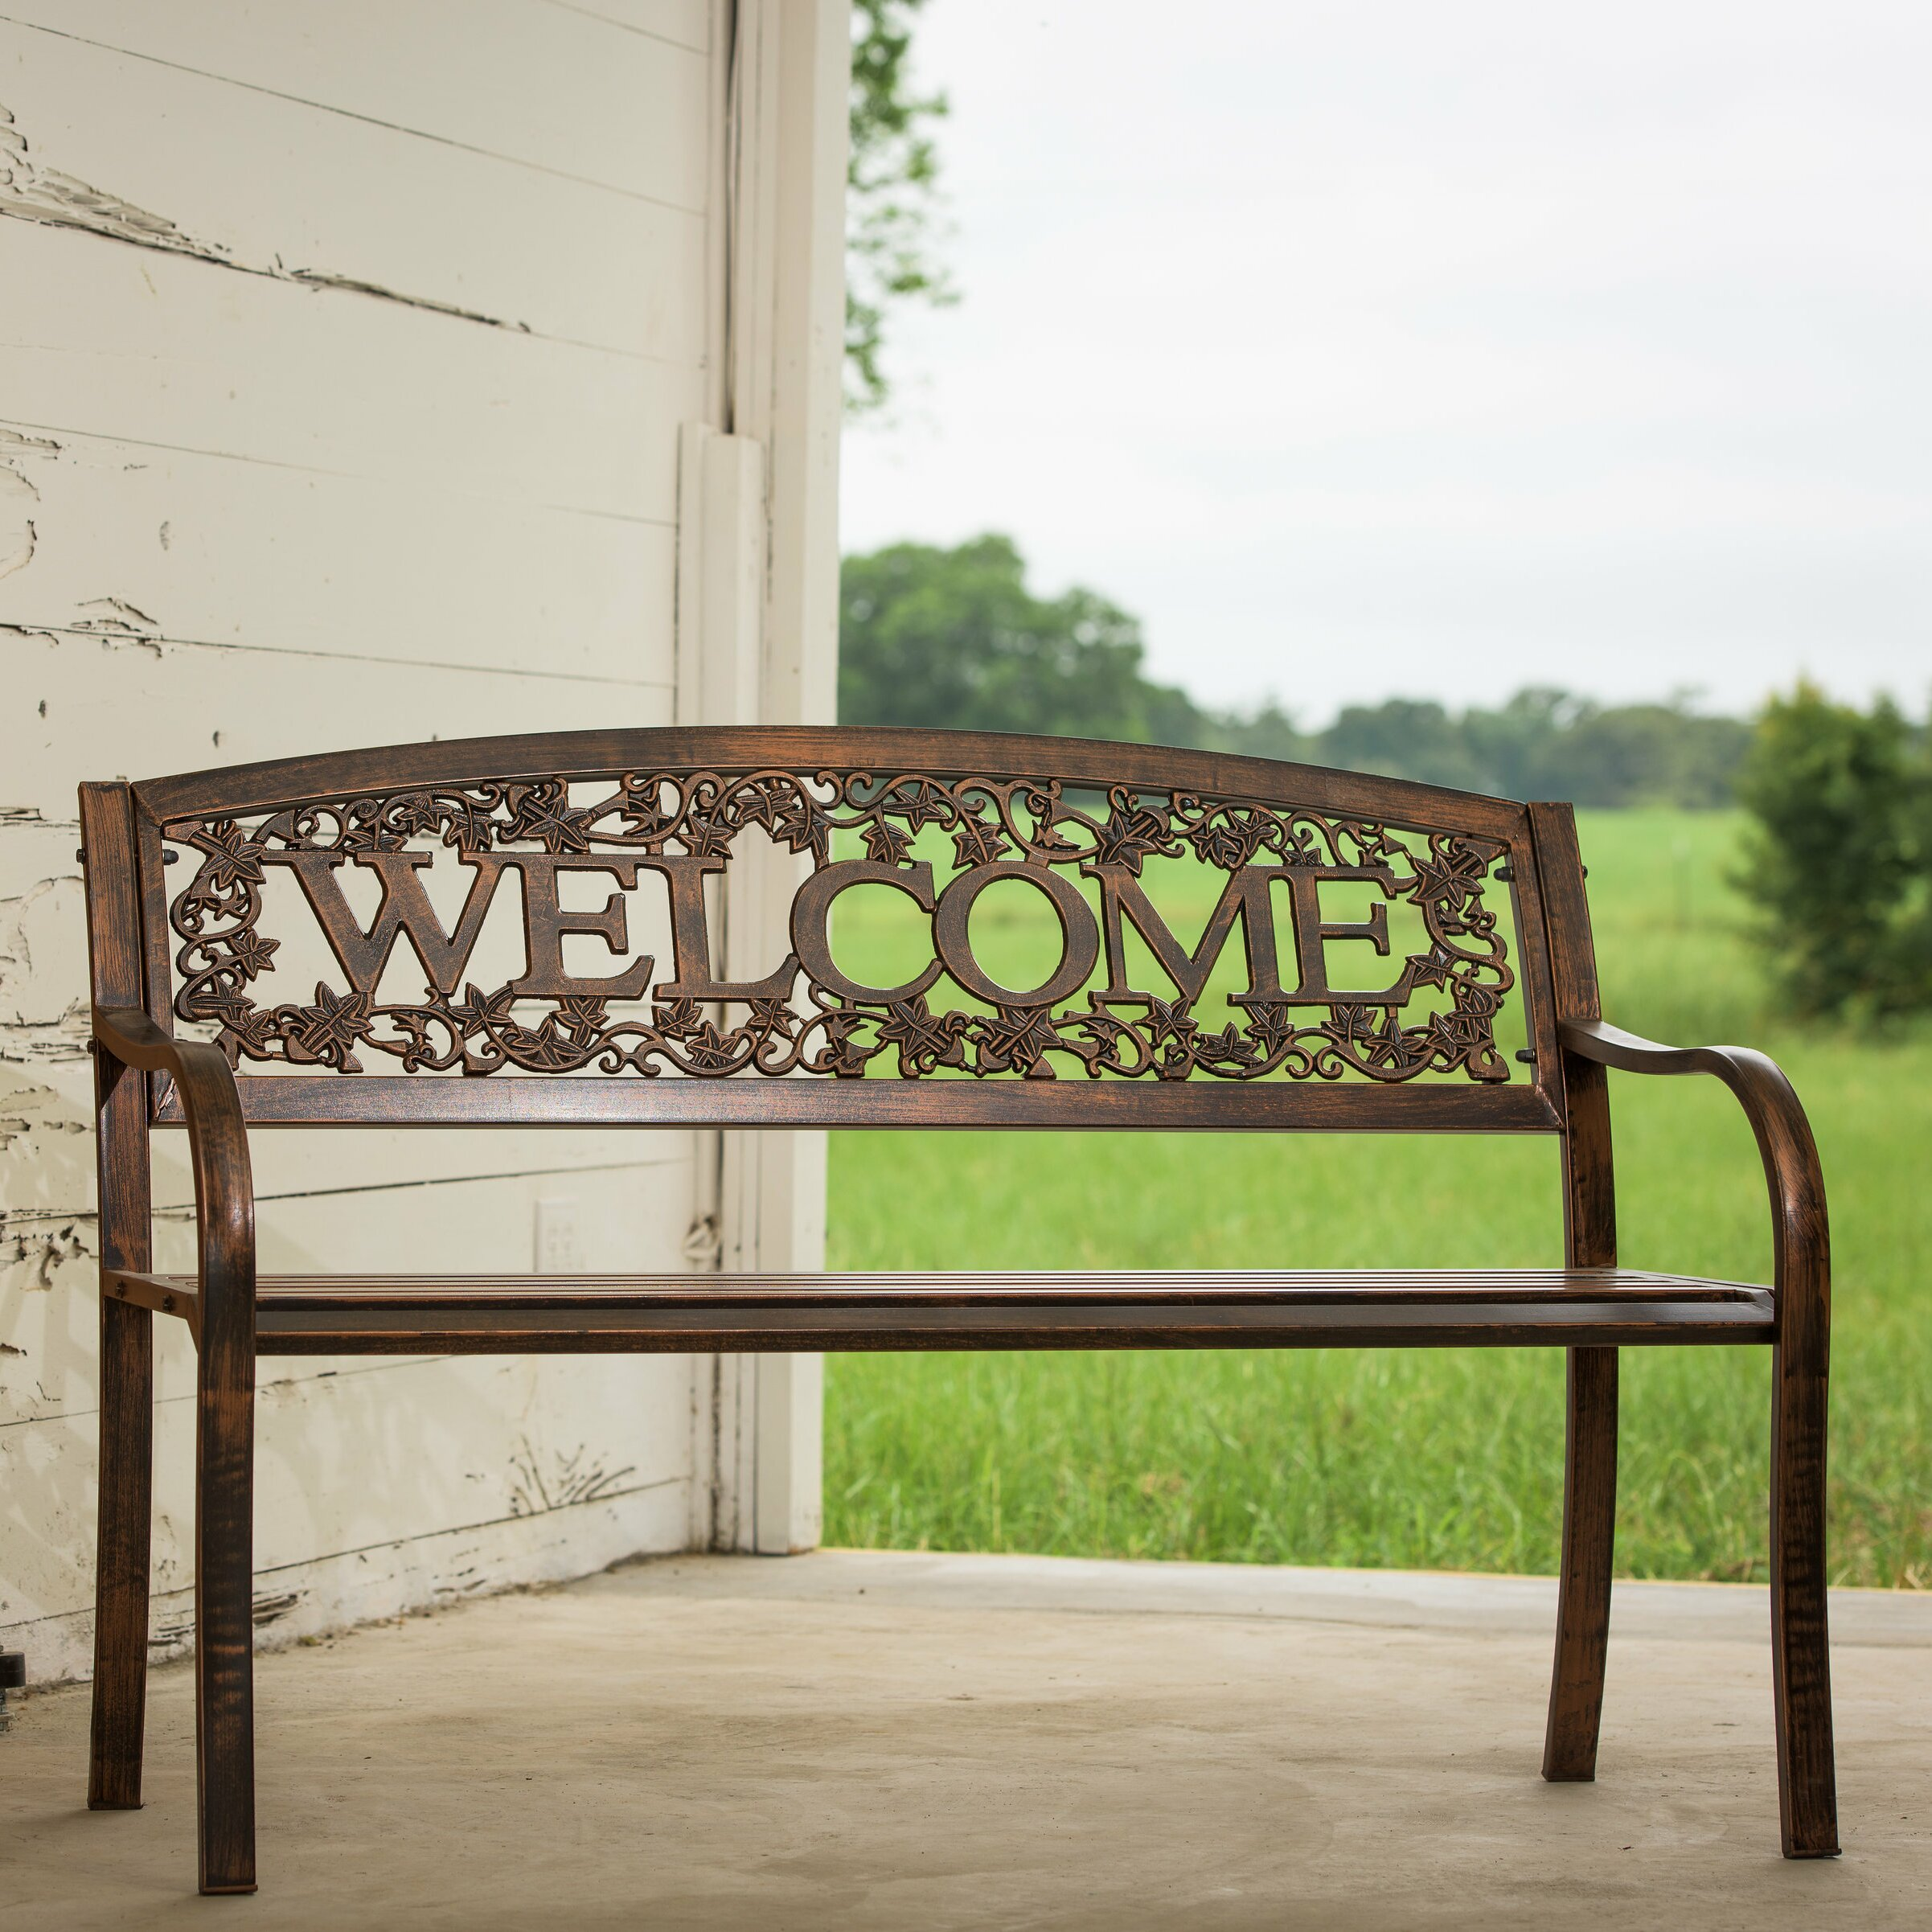 Leighcountry Welcome Steel Garden Bench Reviews Wayfair